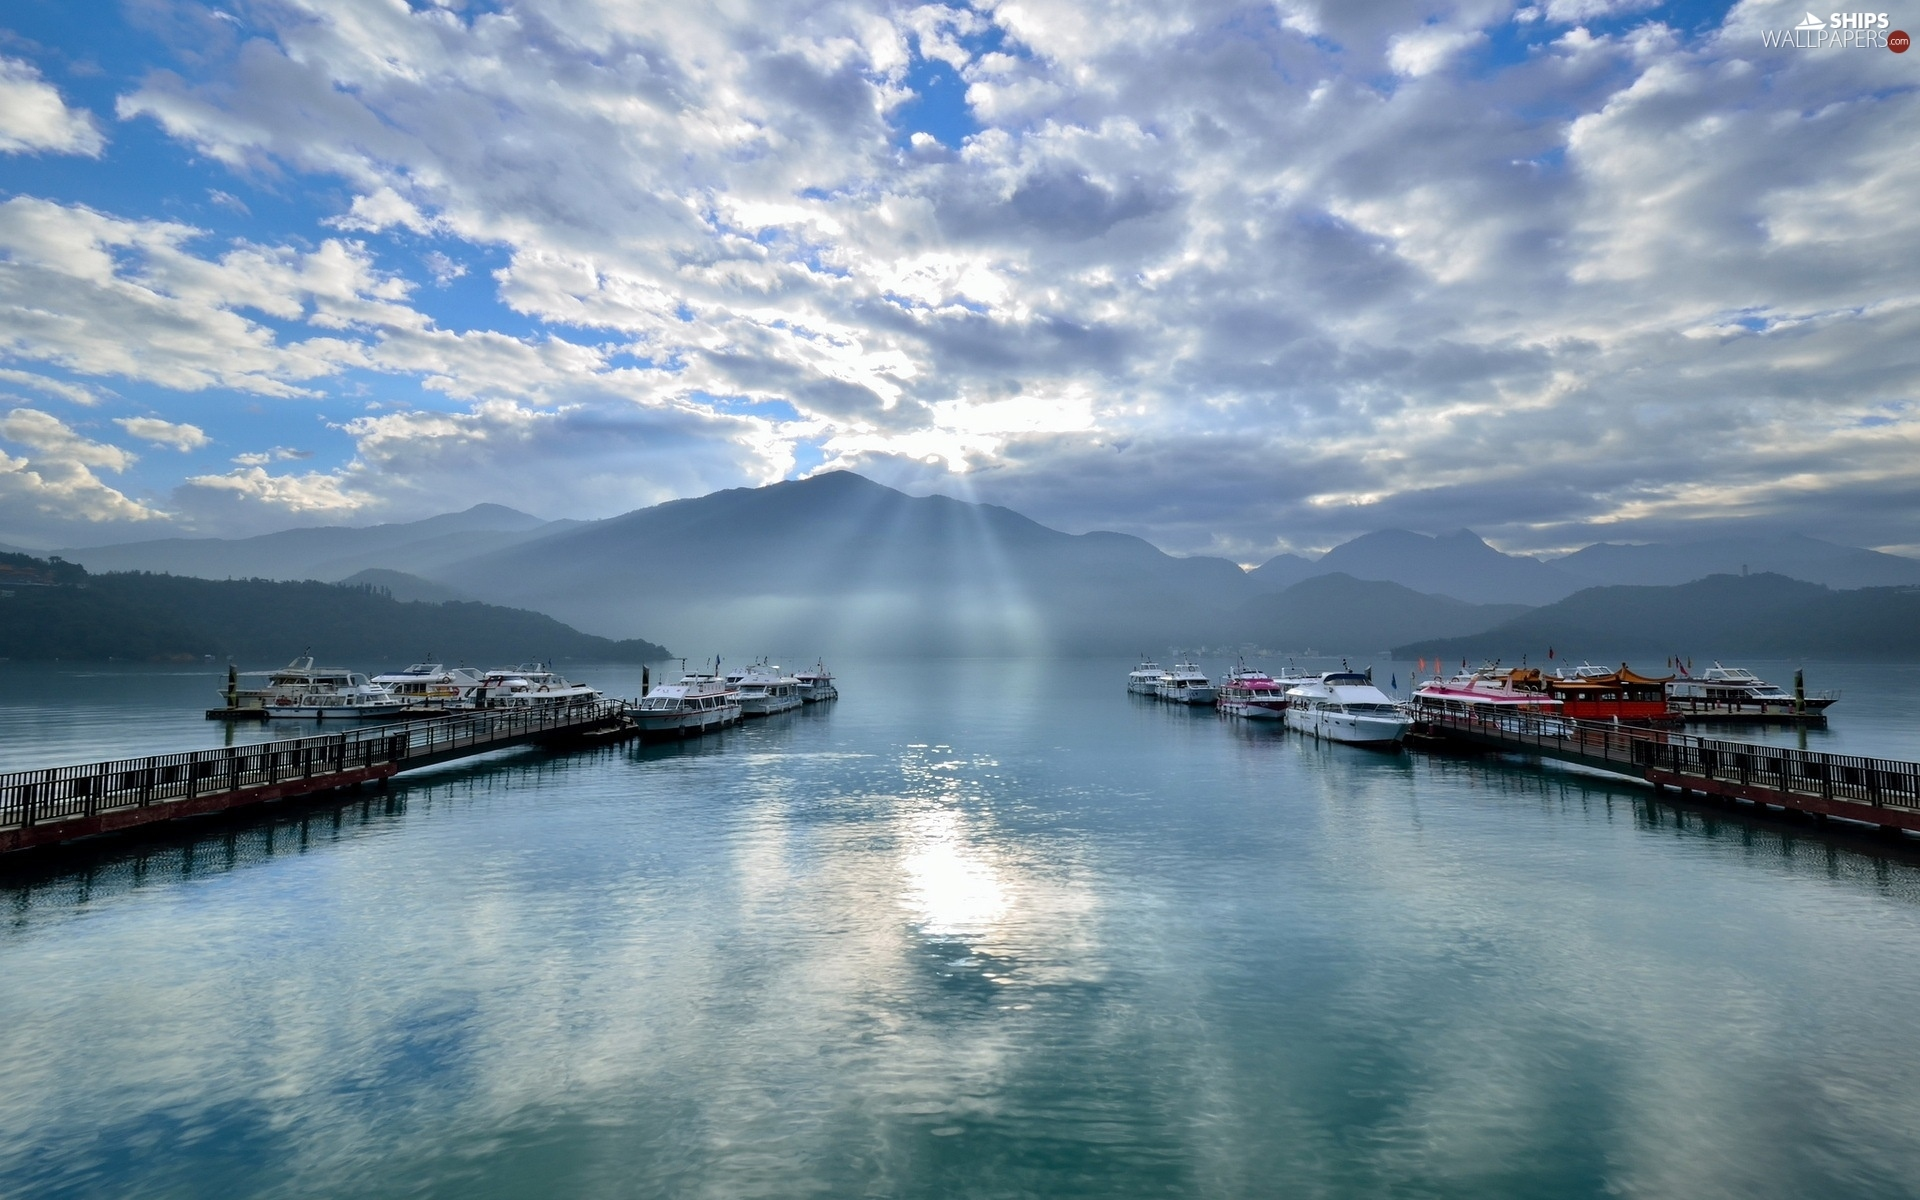 Boats, lake, clouds, Mountains, sun, Yachts, Harbour, rays